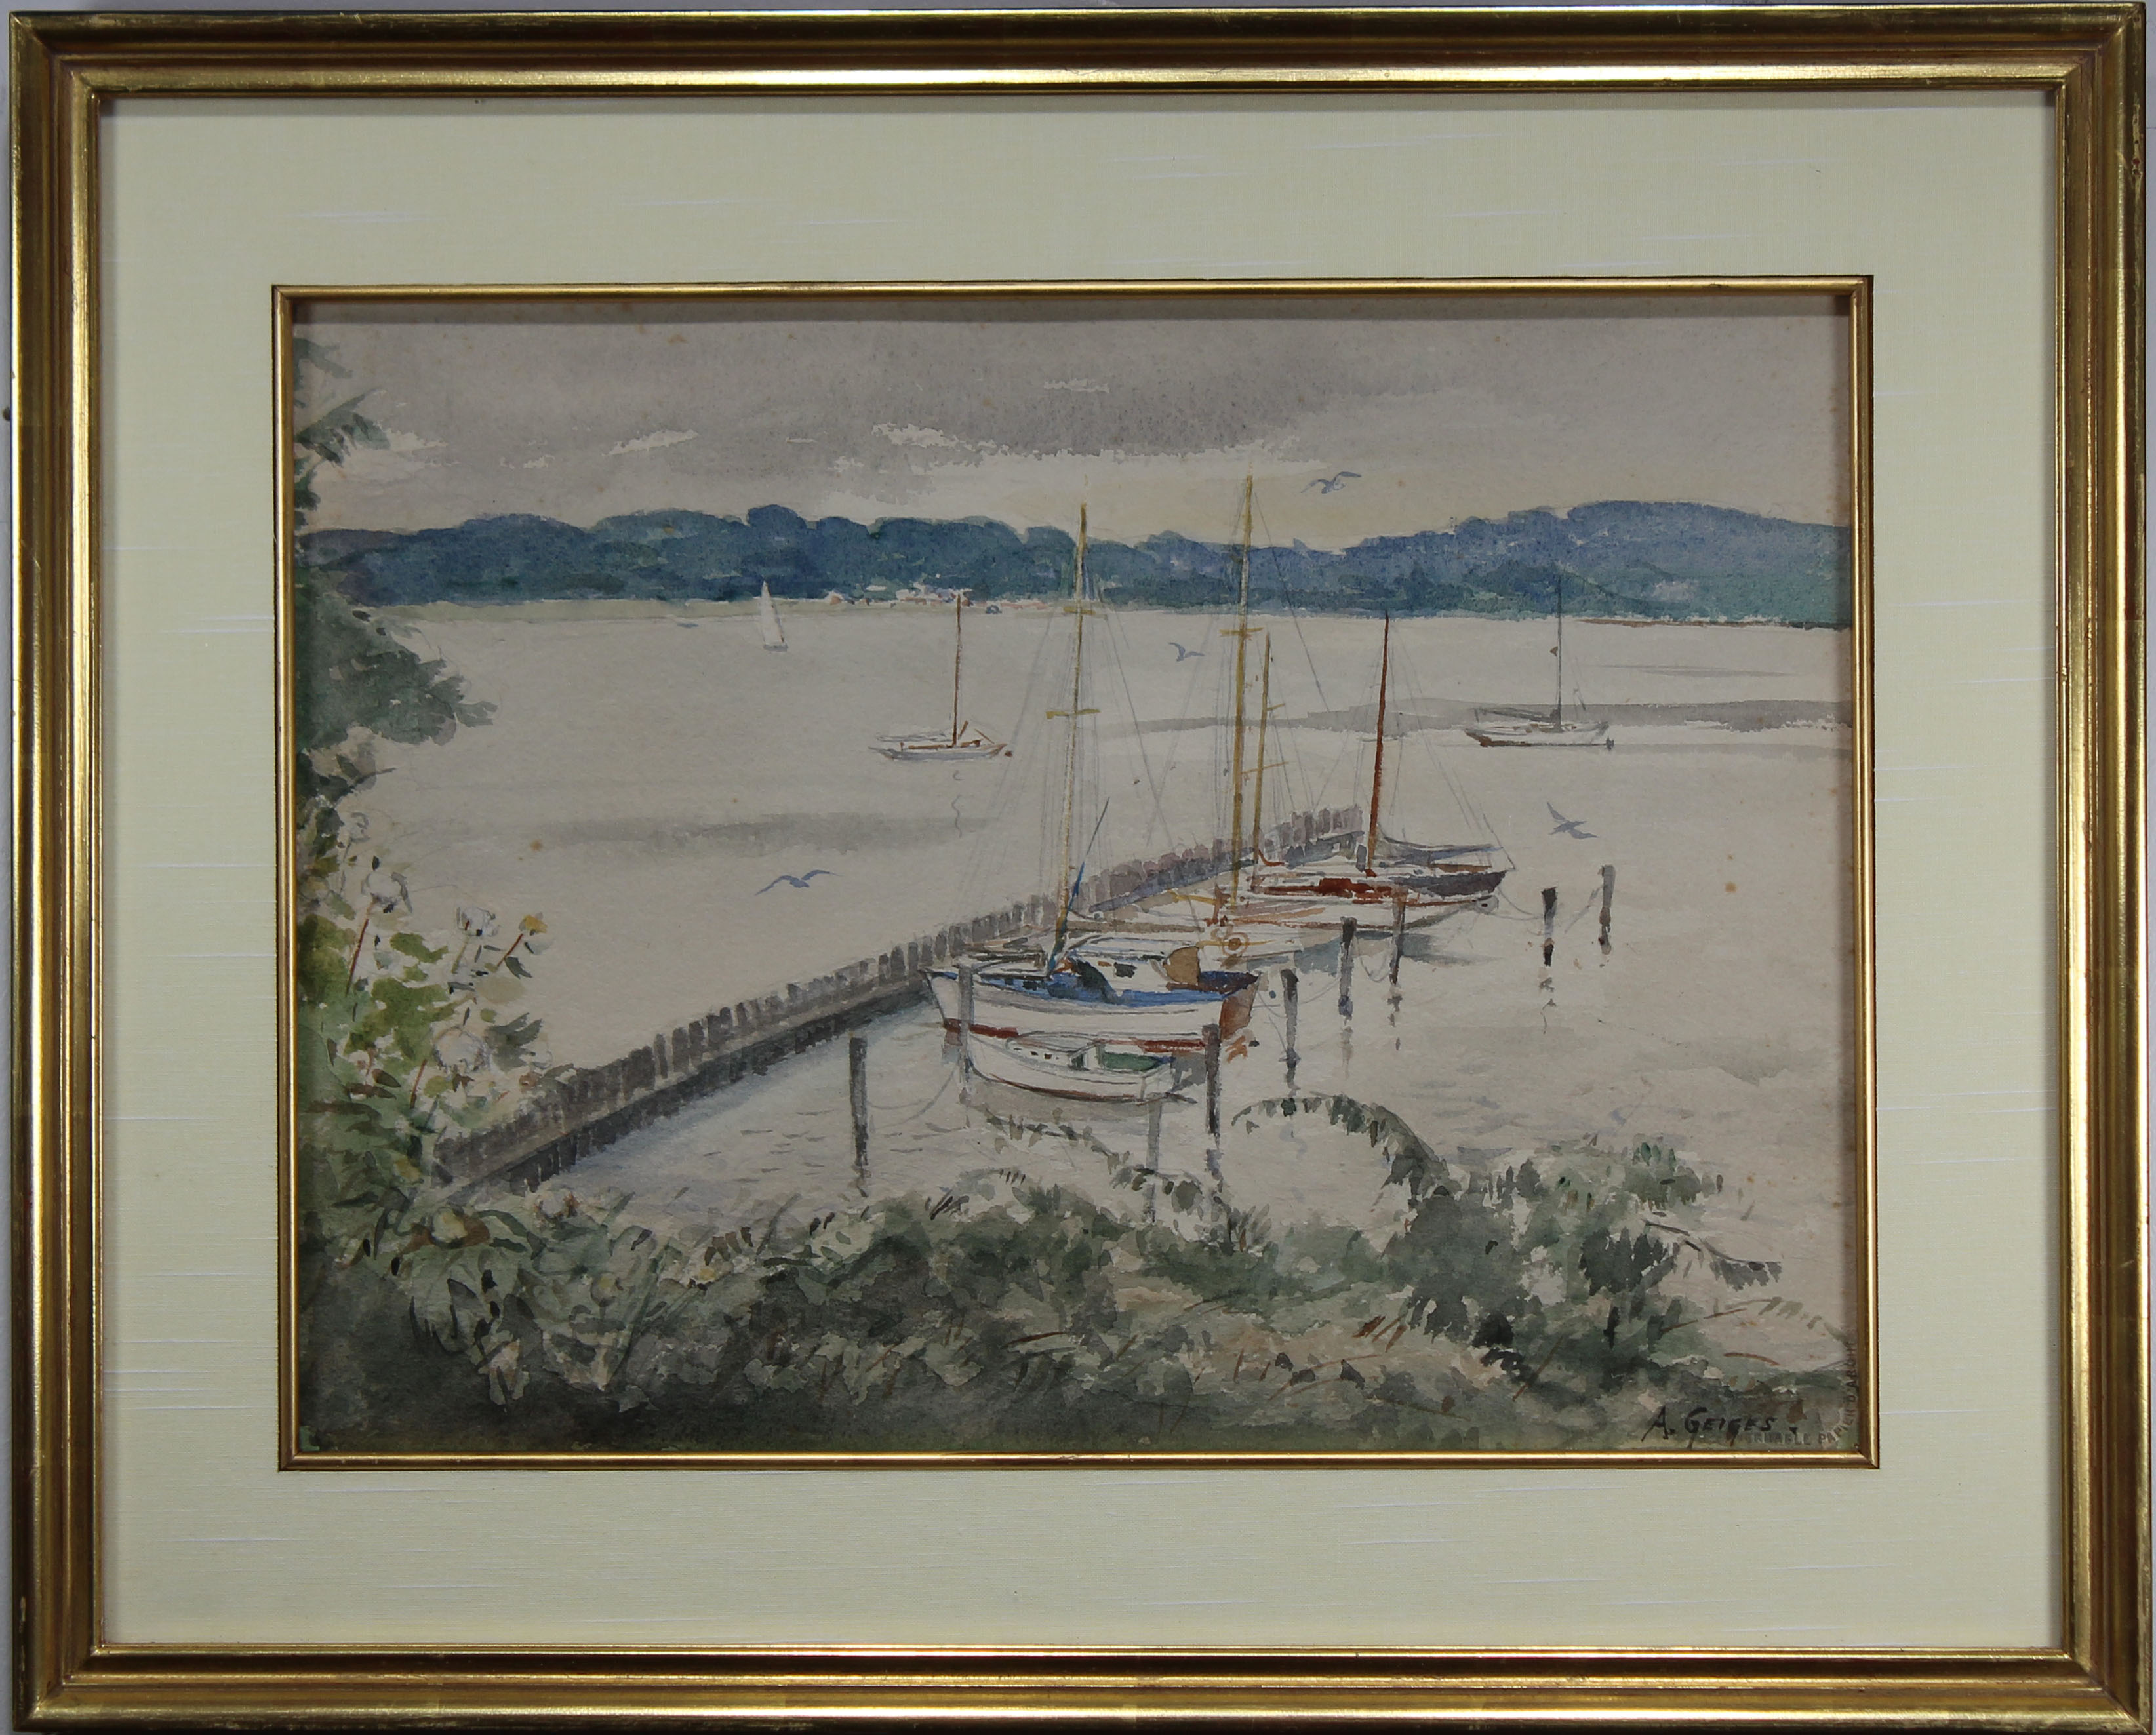 Lot 147 - American School, Signed 20th C. Harbor Scene